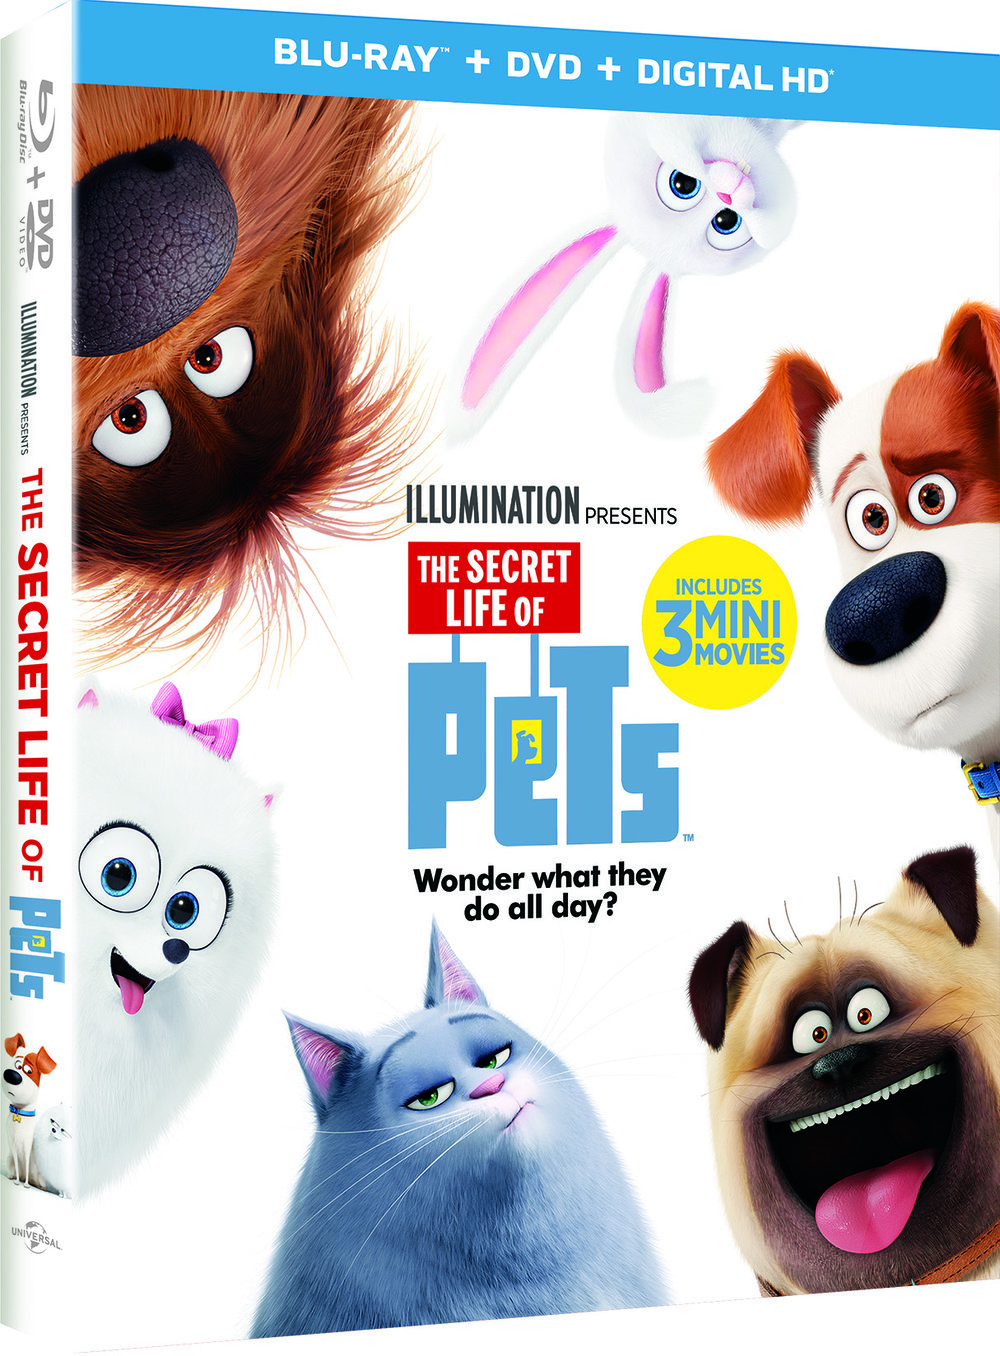 The Secret Life of Pets DVD GIveway